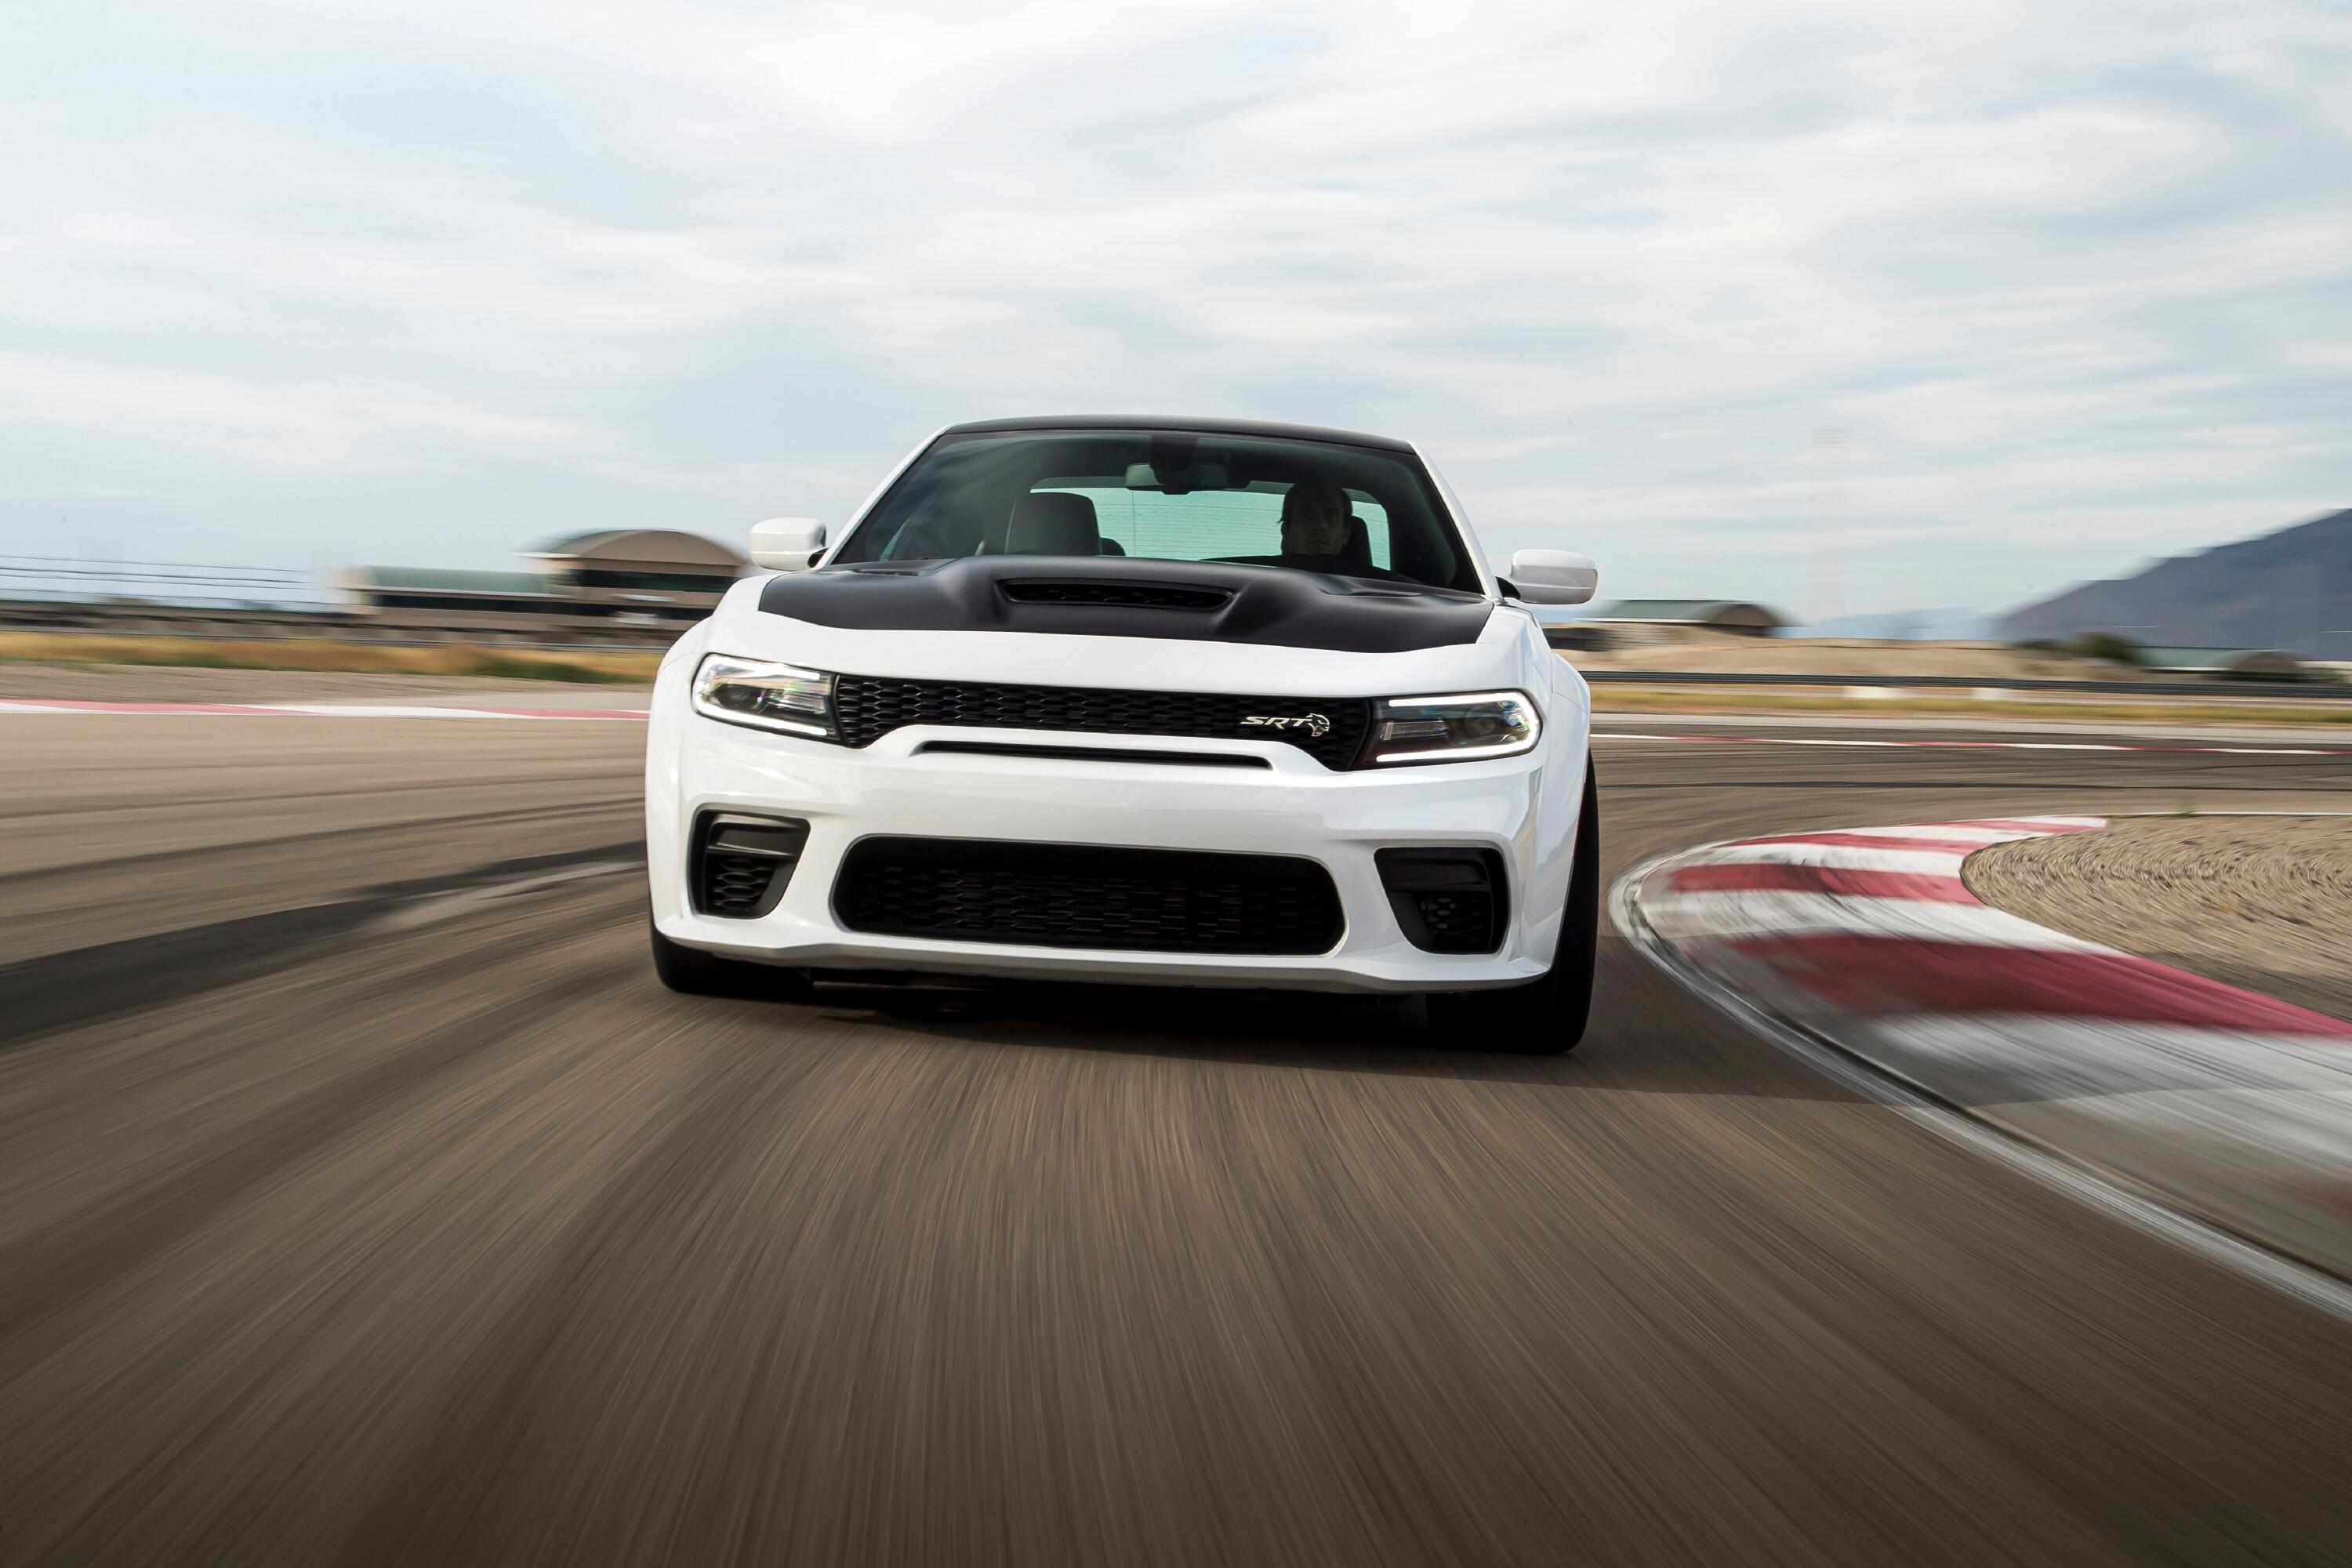 2021-dodge-charger-redeye-007